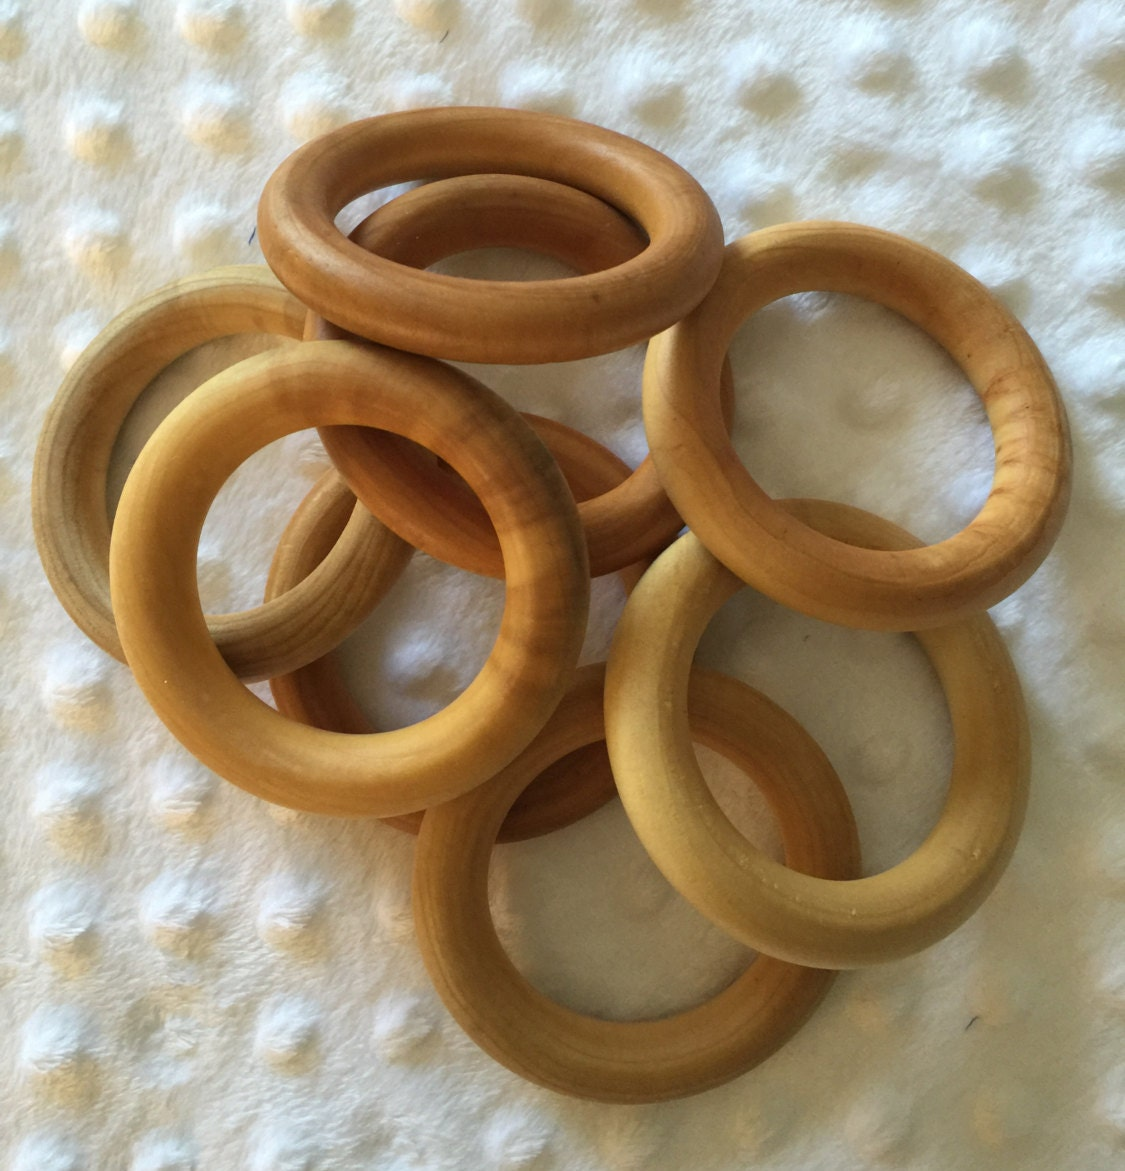 Five 5 3 natural wooden toss craft rings sealed or for Wooden rings for crafts